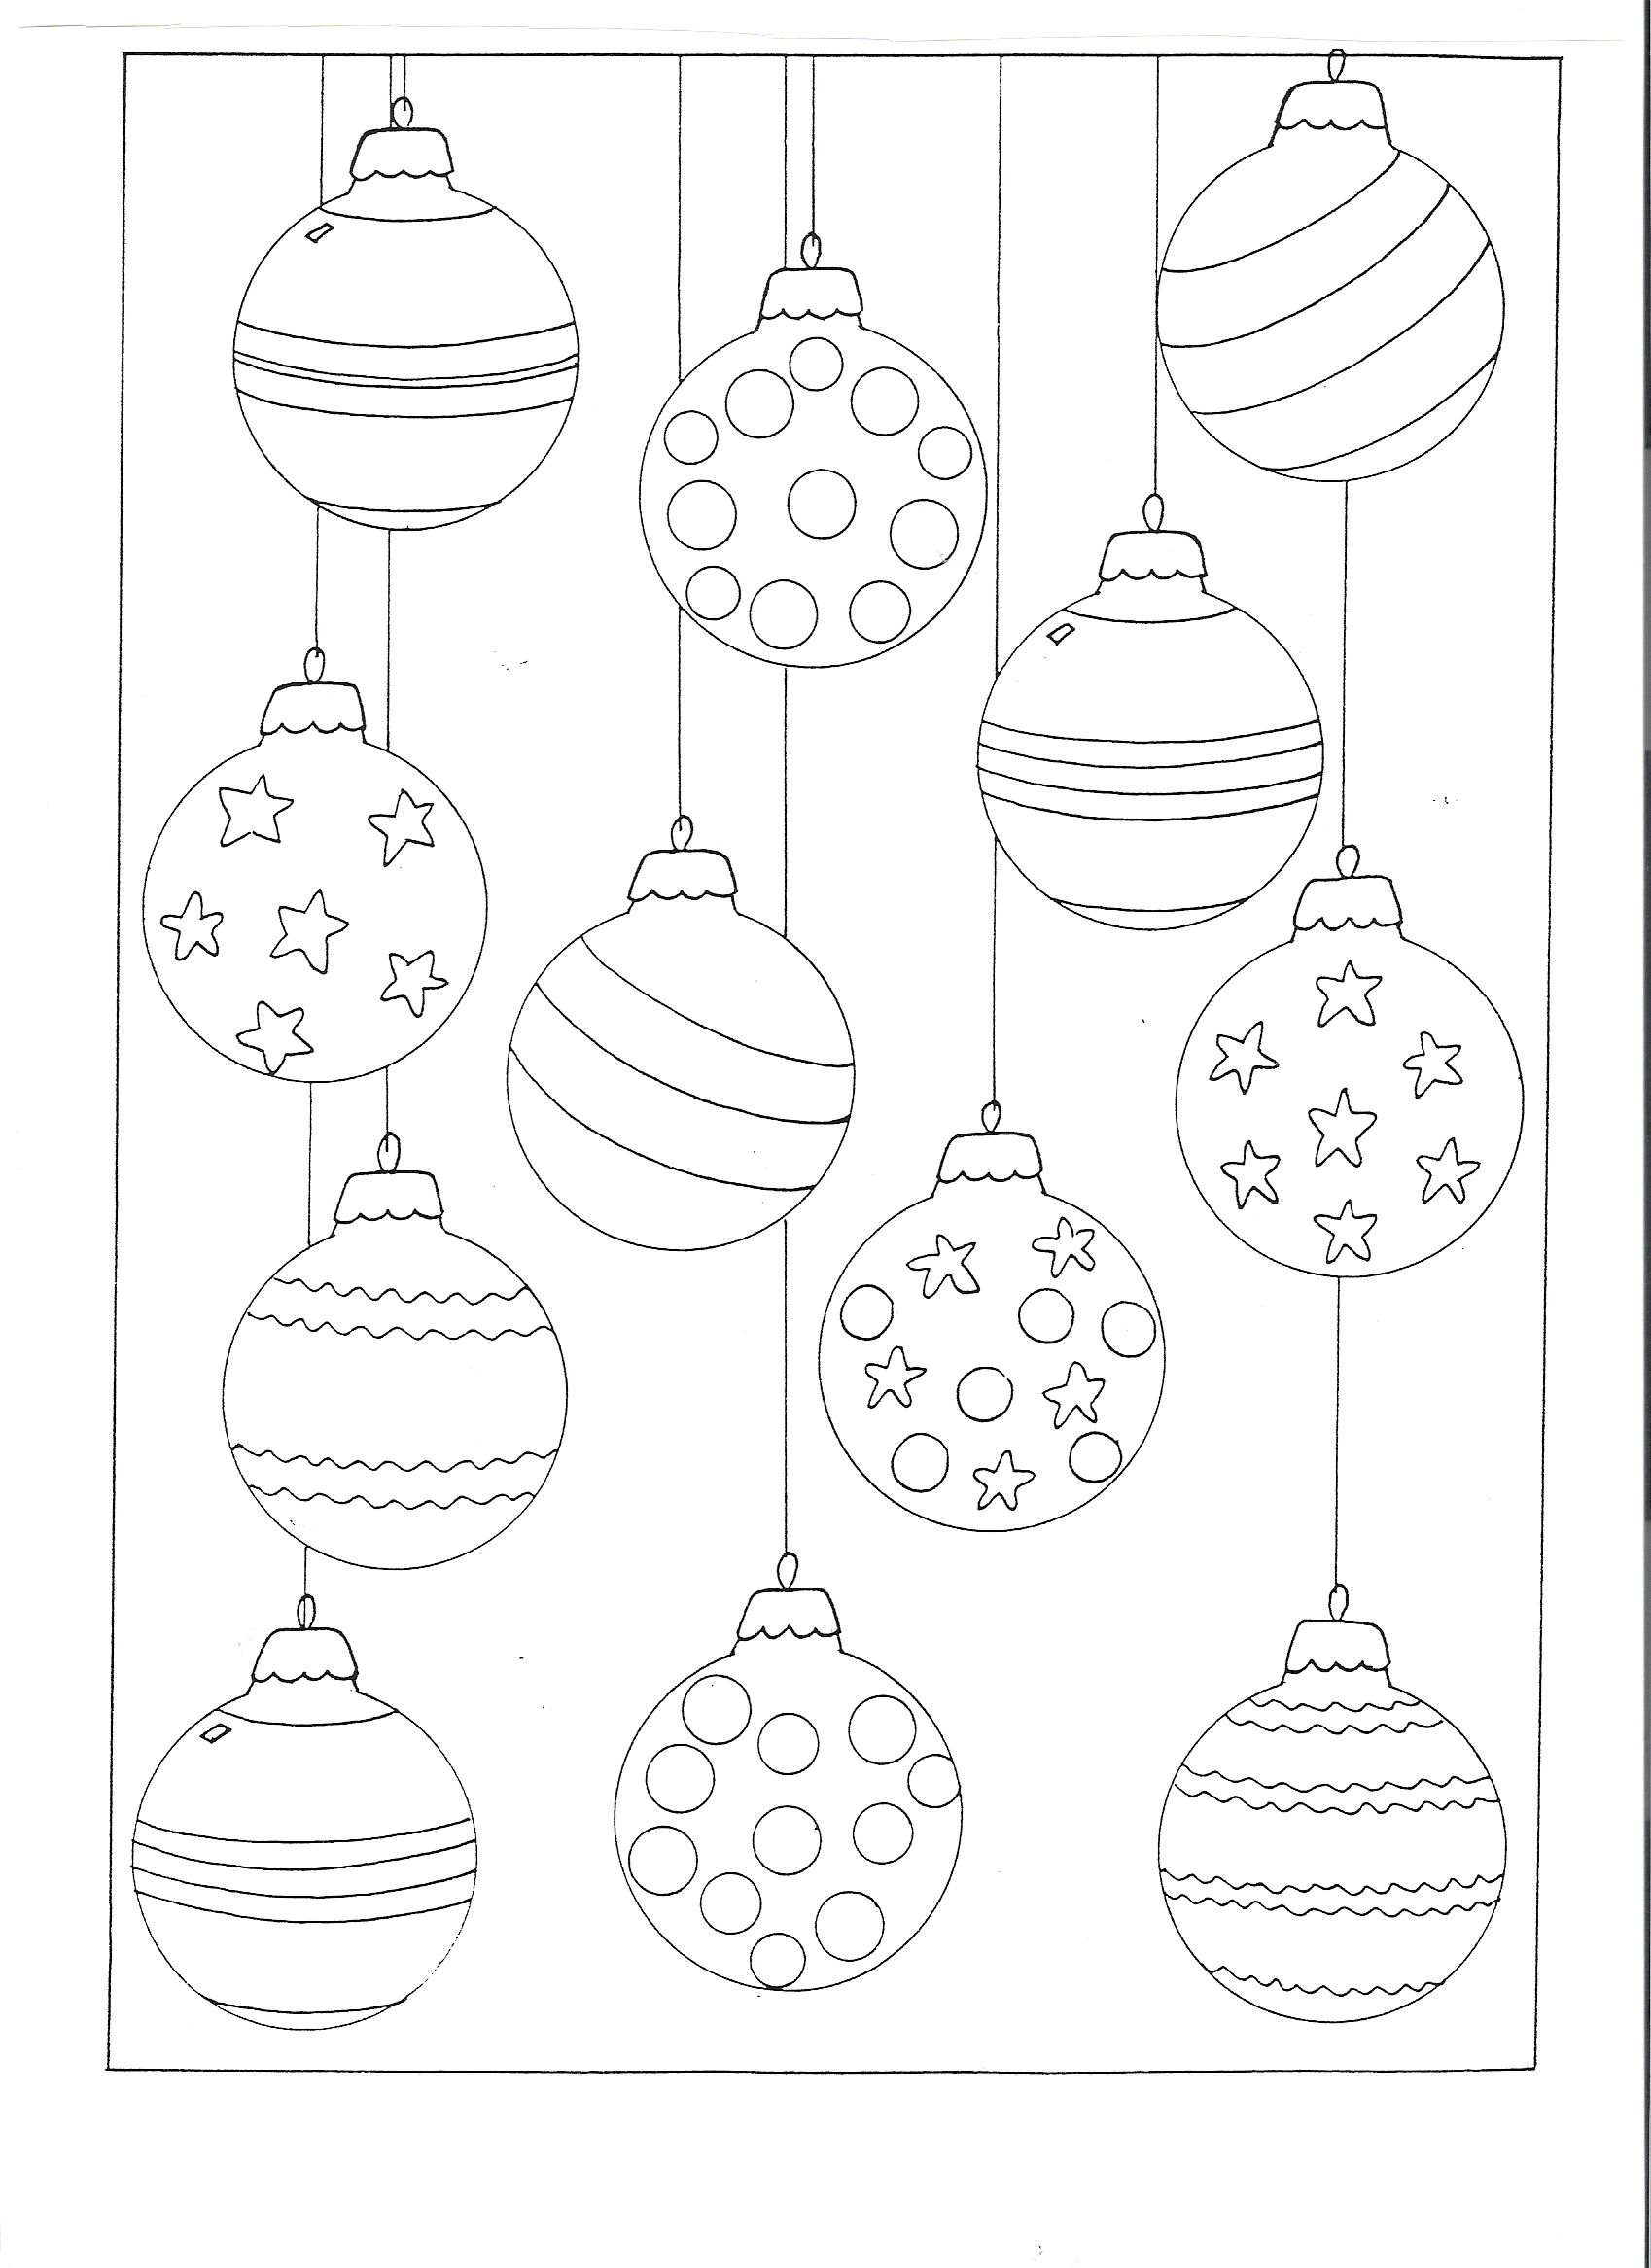 Color Your Own Christmas Ornaments Printable Coloring Pages